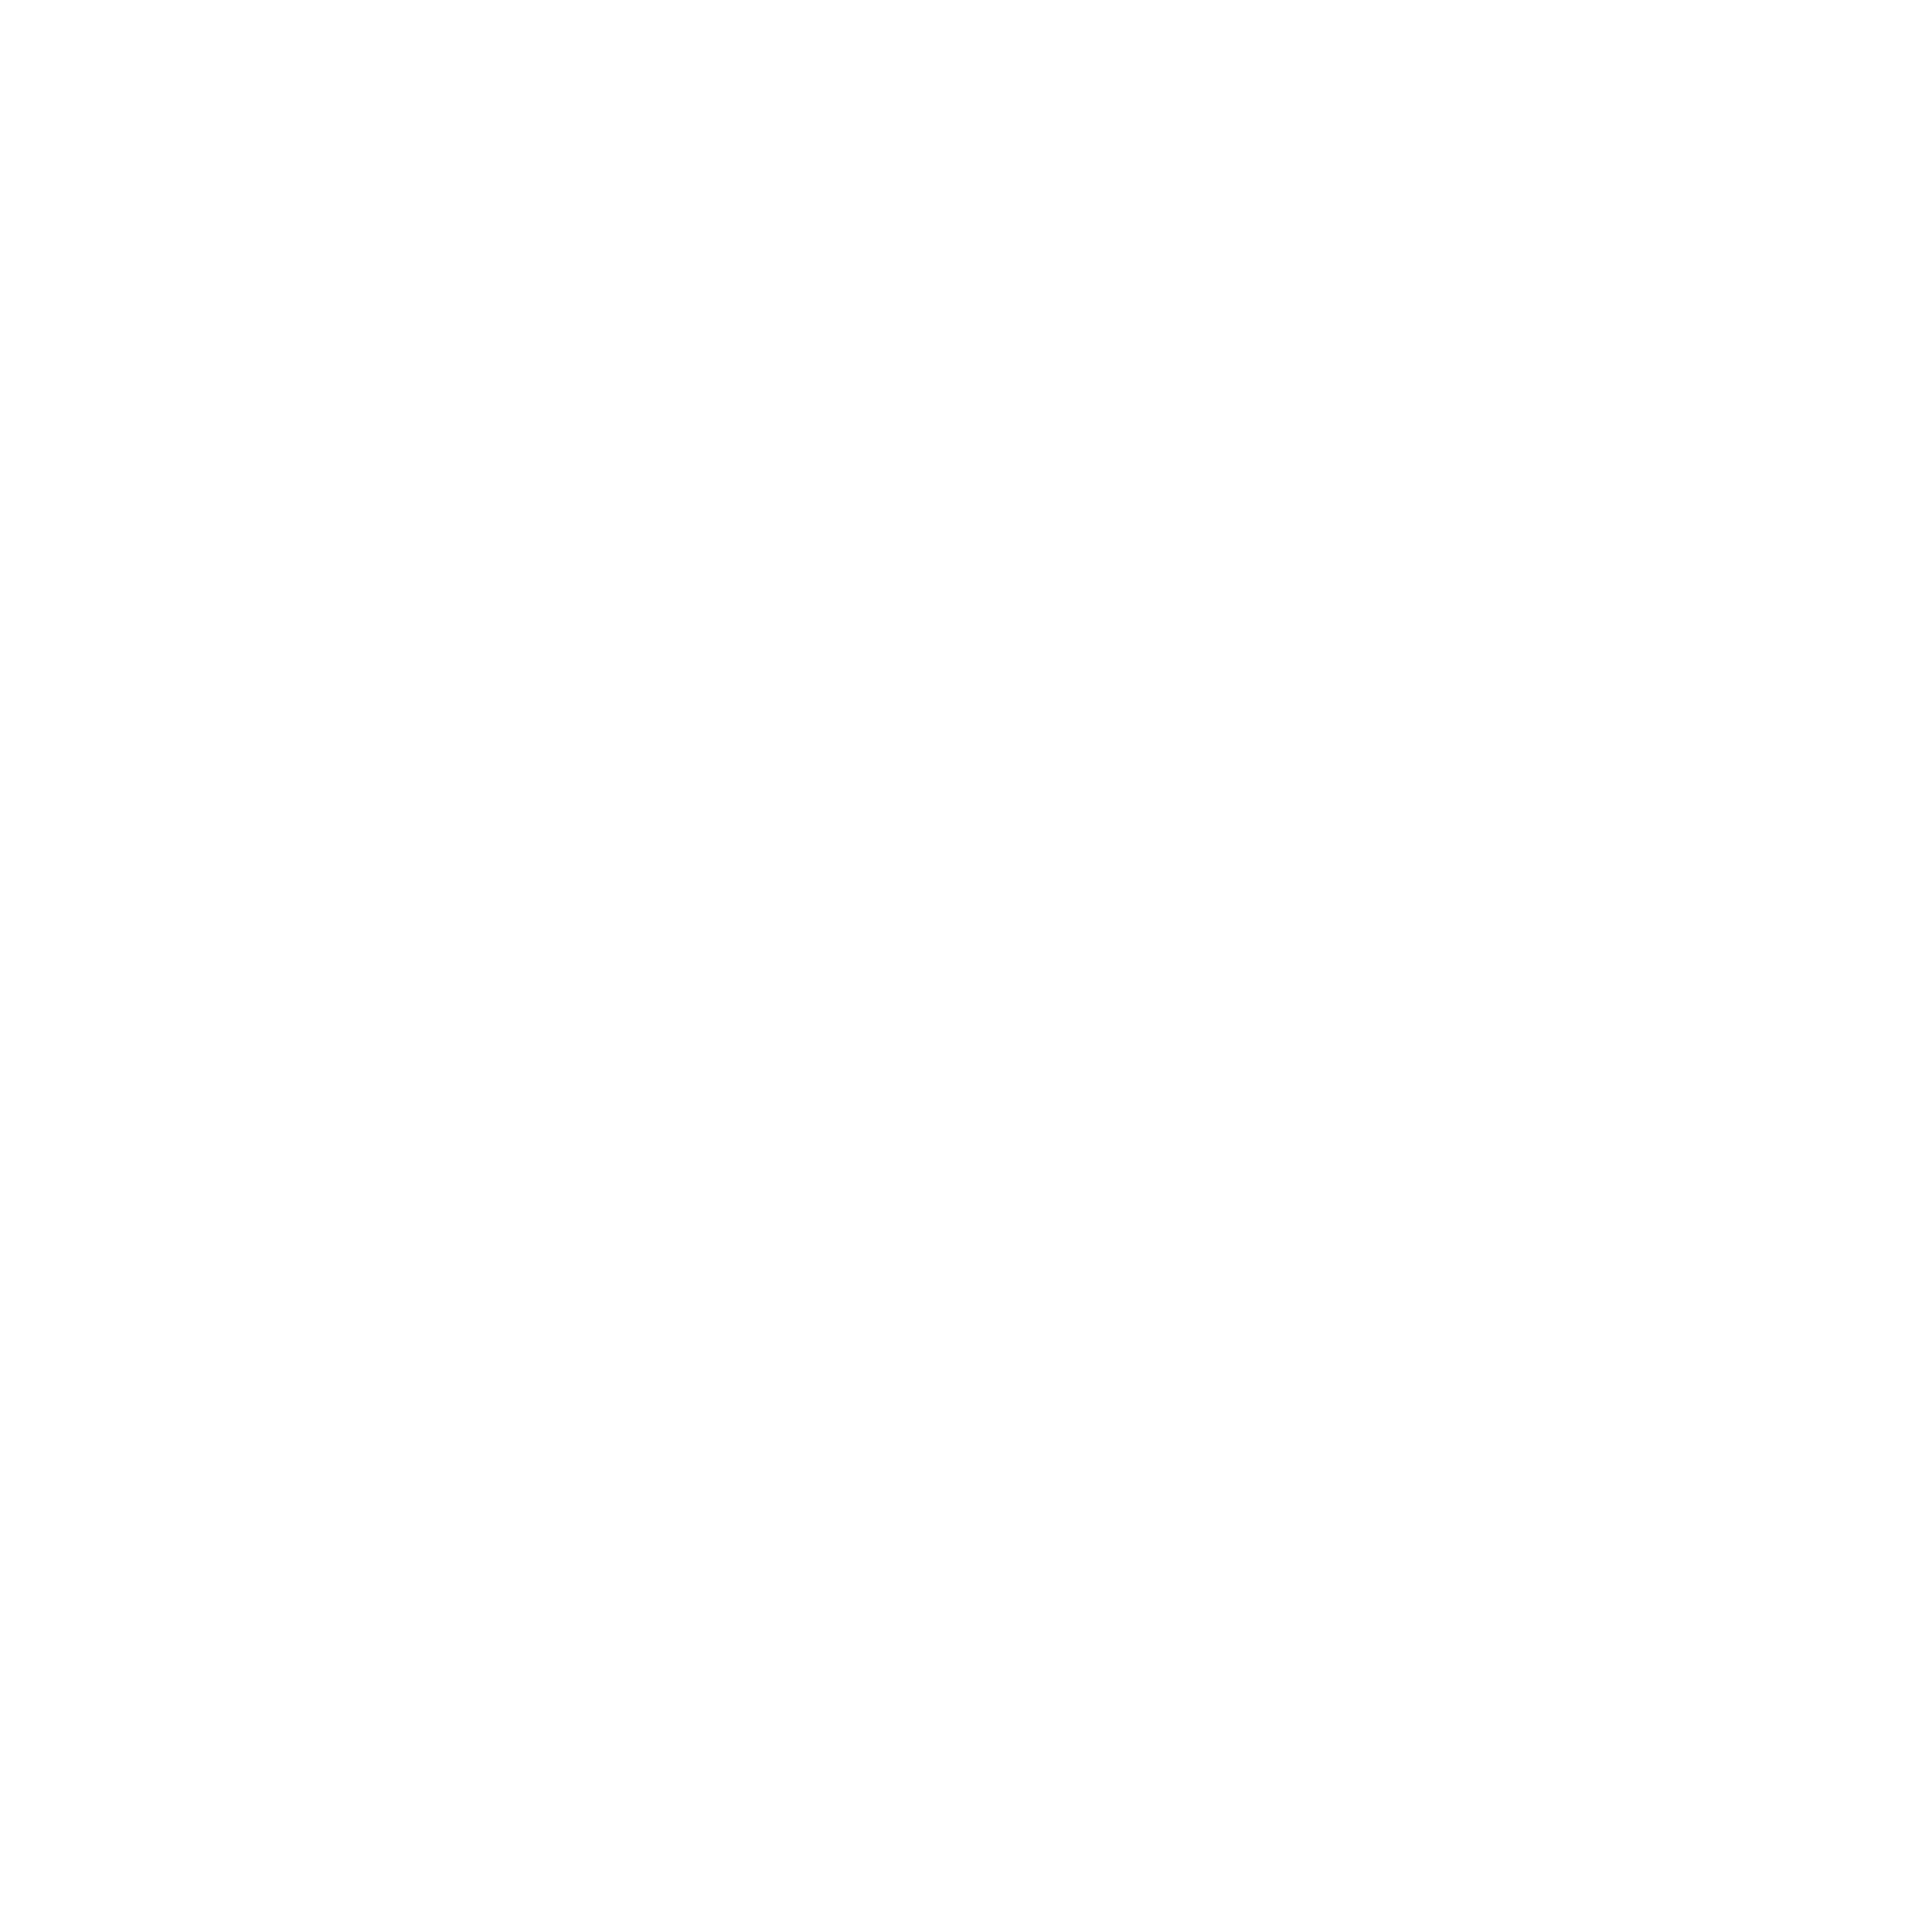 Logo Design for Fast Growing Dating Site